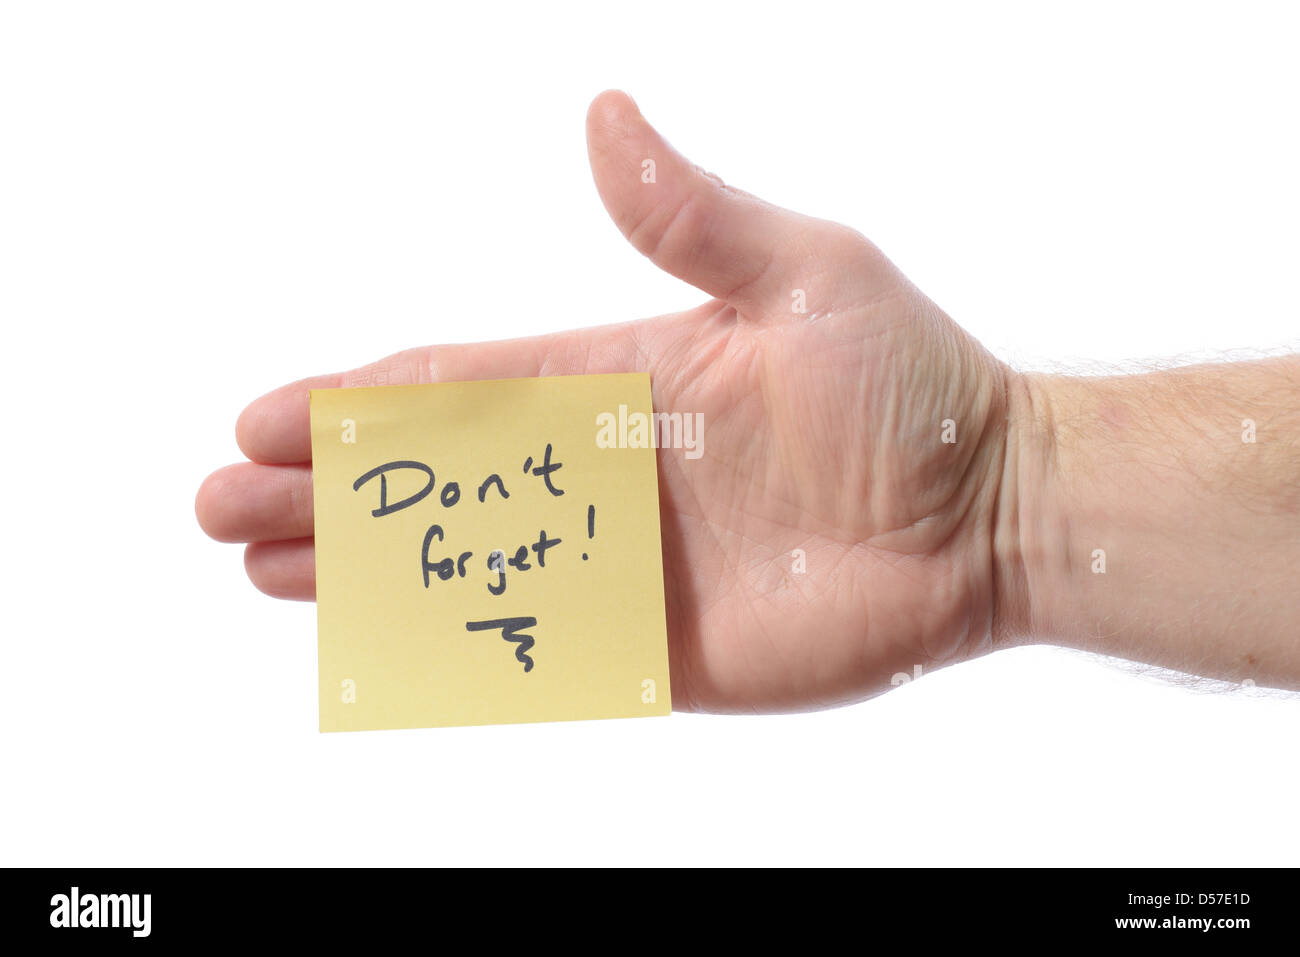 post it note with don't forget as a reminder note on hand isolated on white - Stock Image